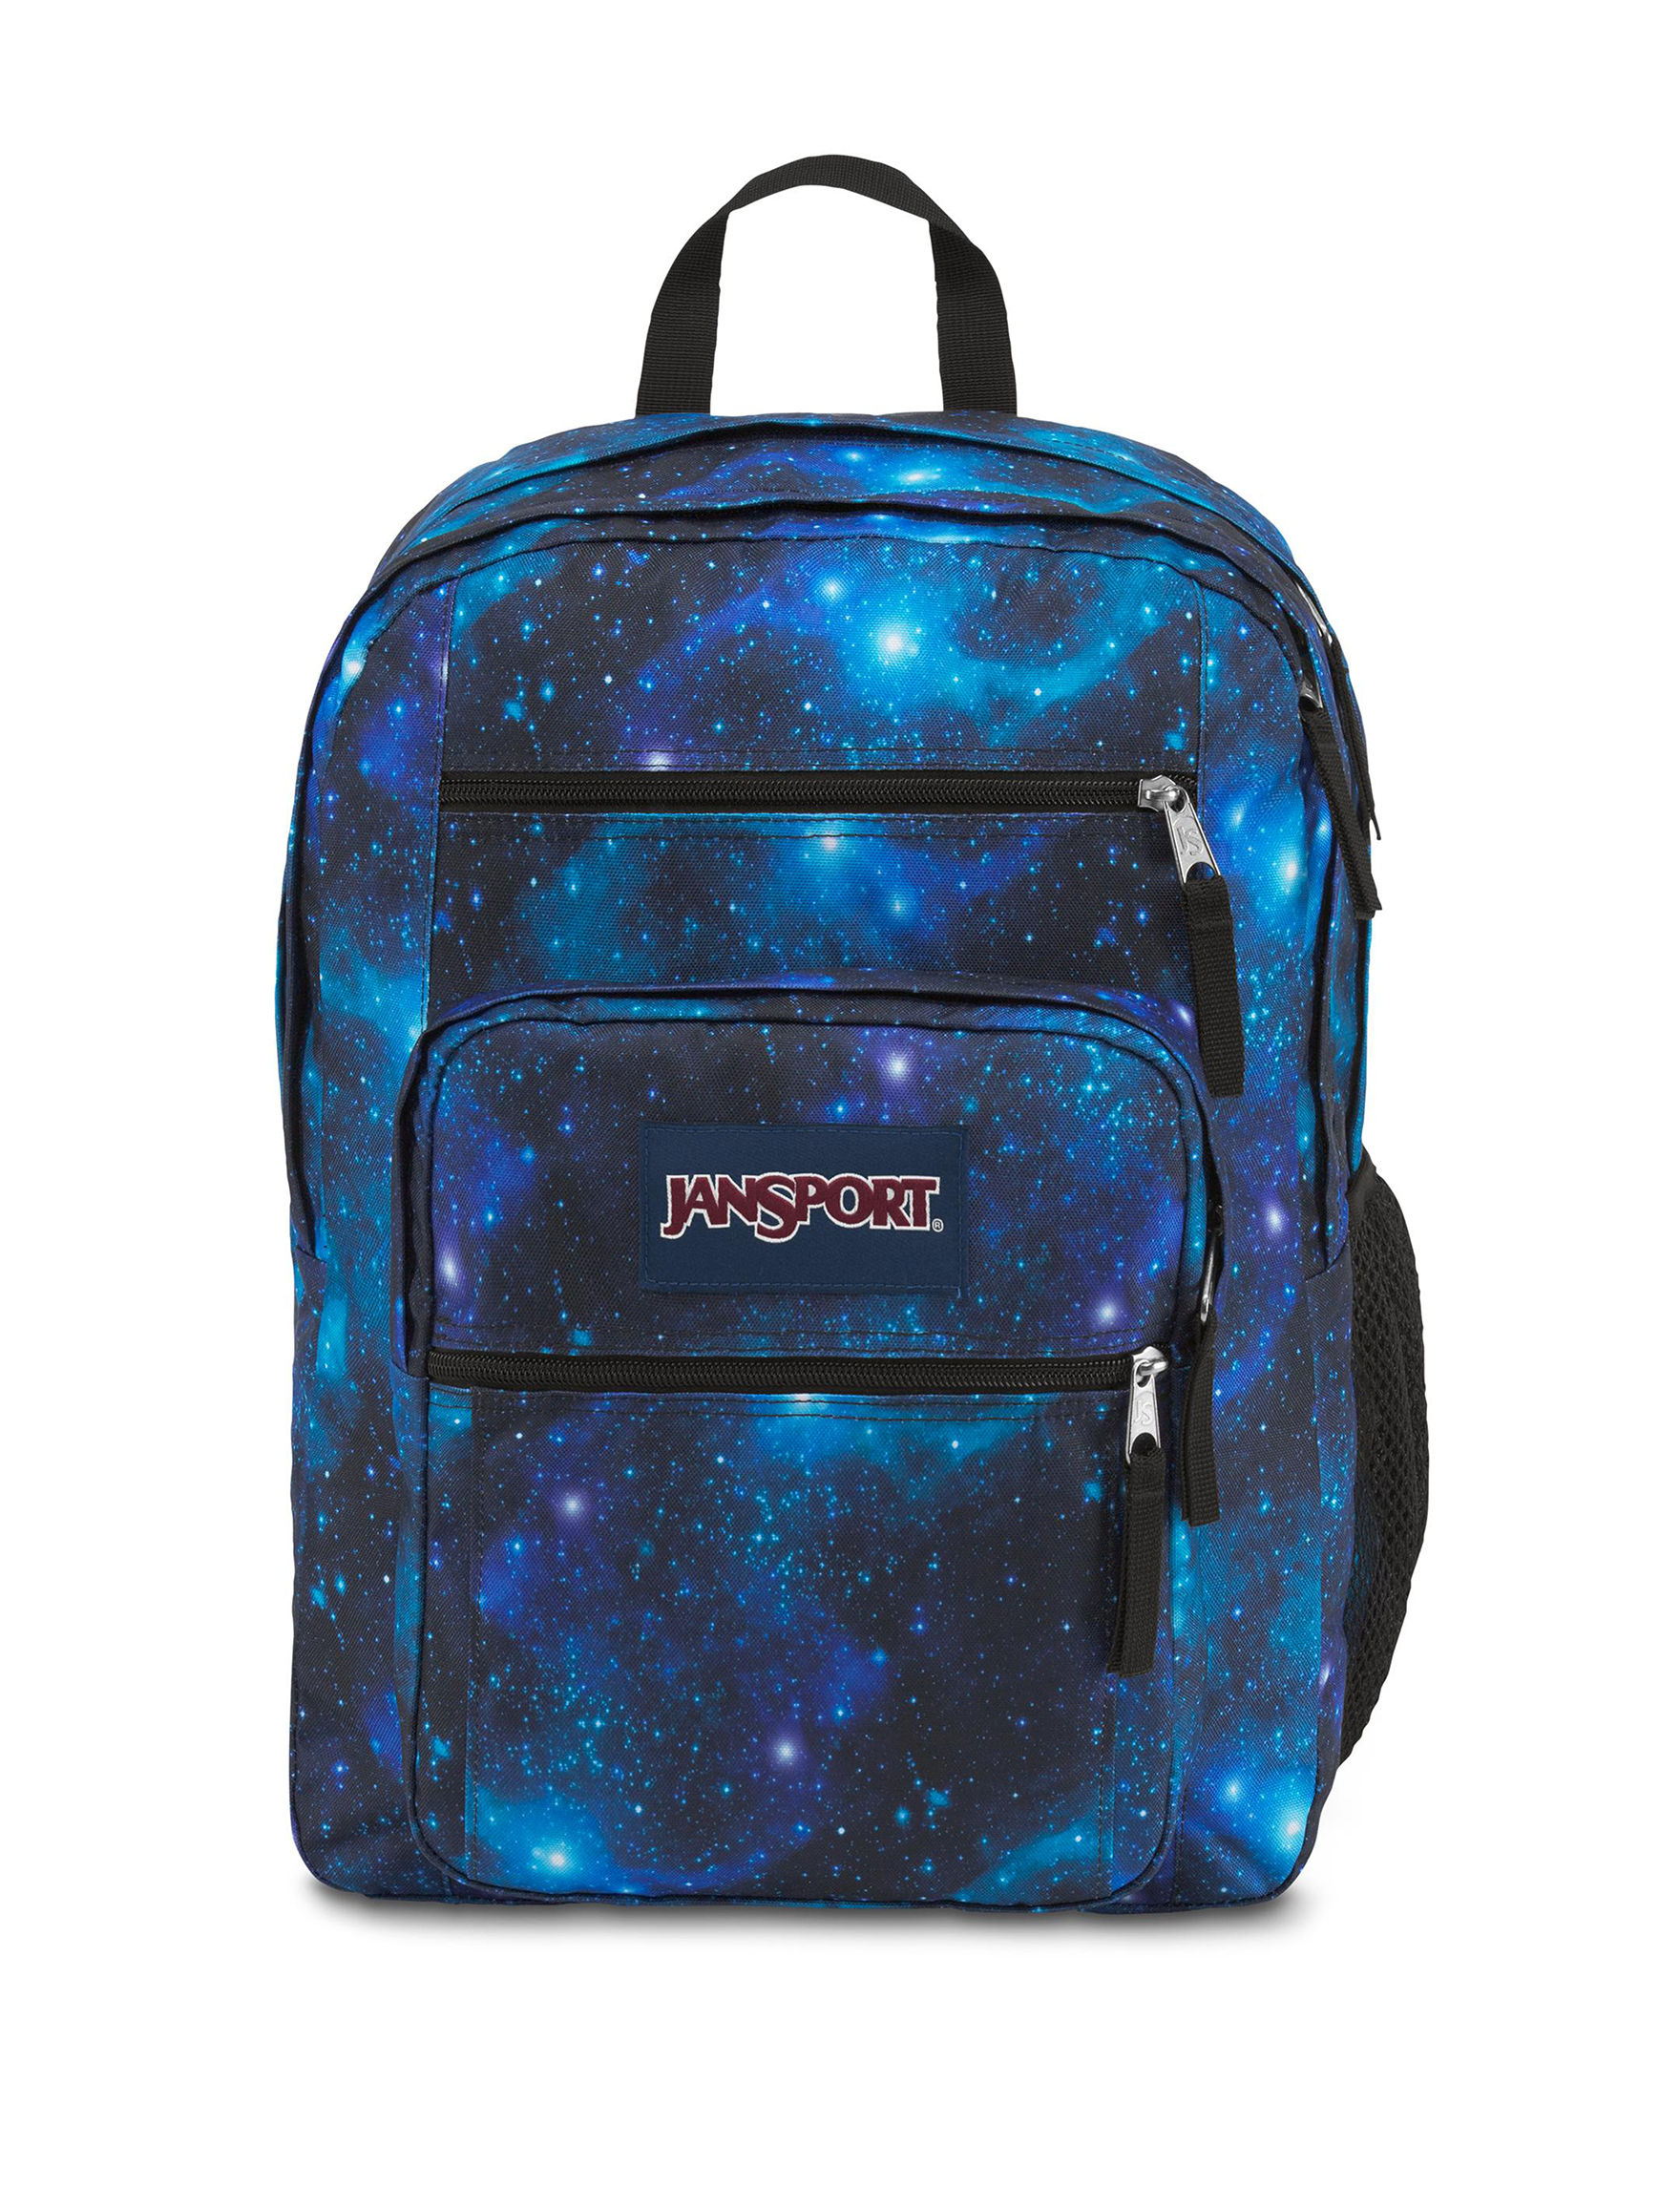 Jansport Galaxy Bookbags & Backpacks